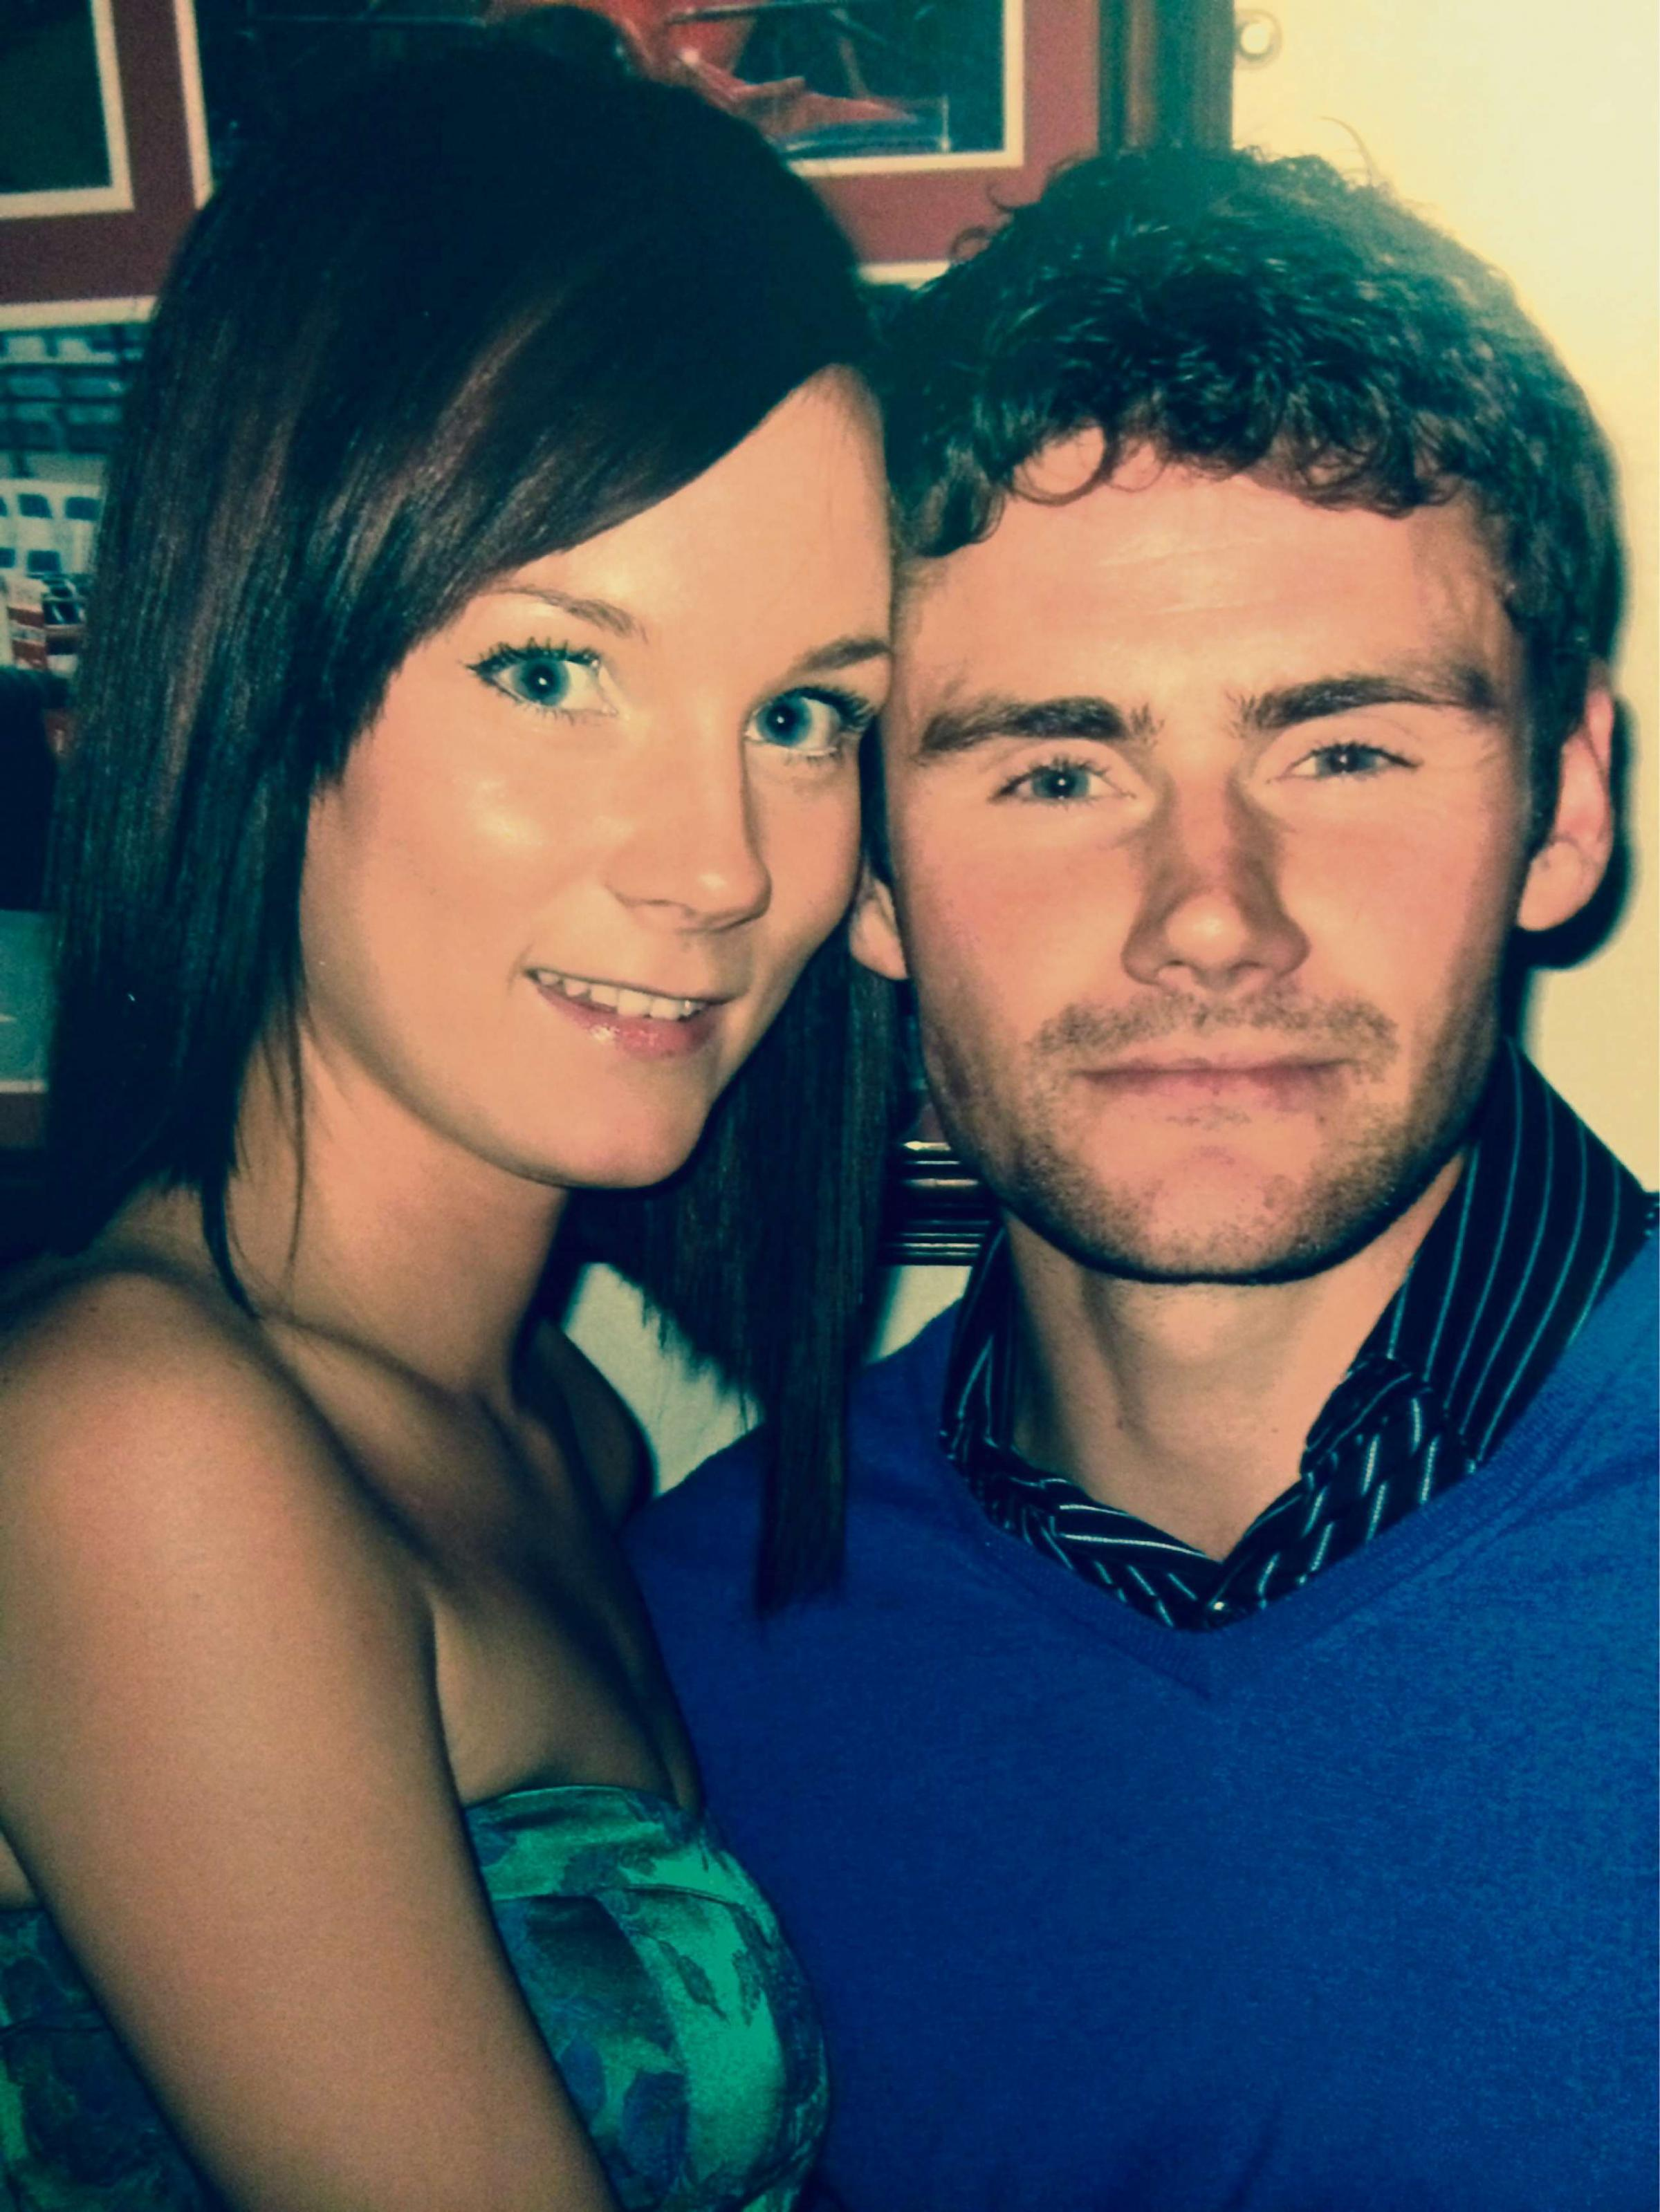 Fiancee of Penarth marine reaches £13,000 fundraising target